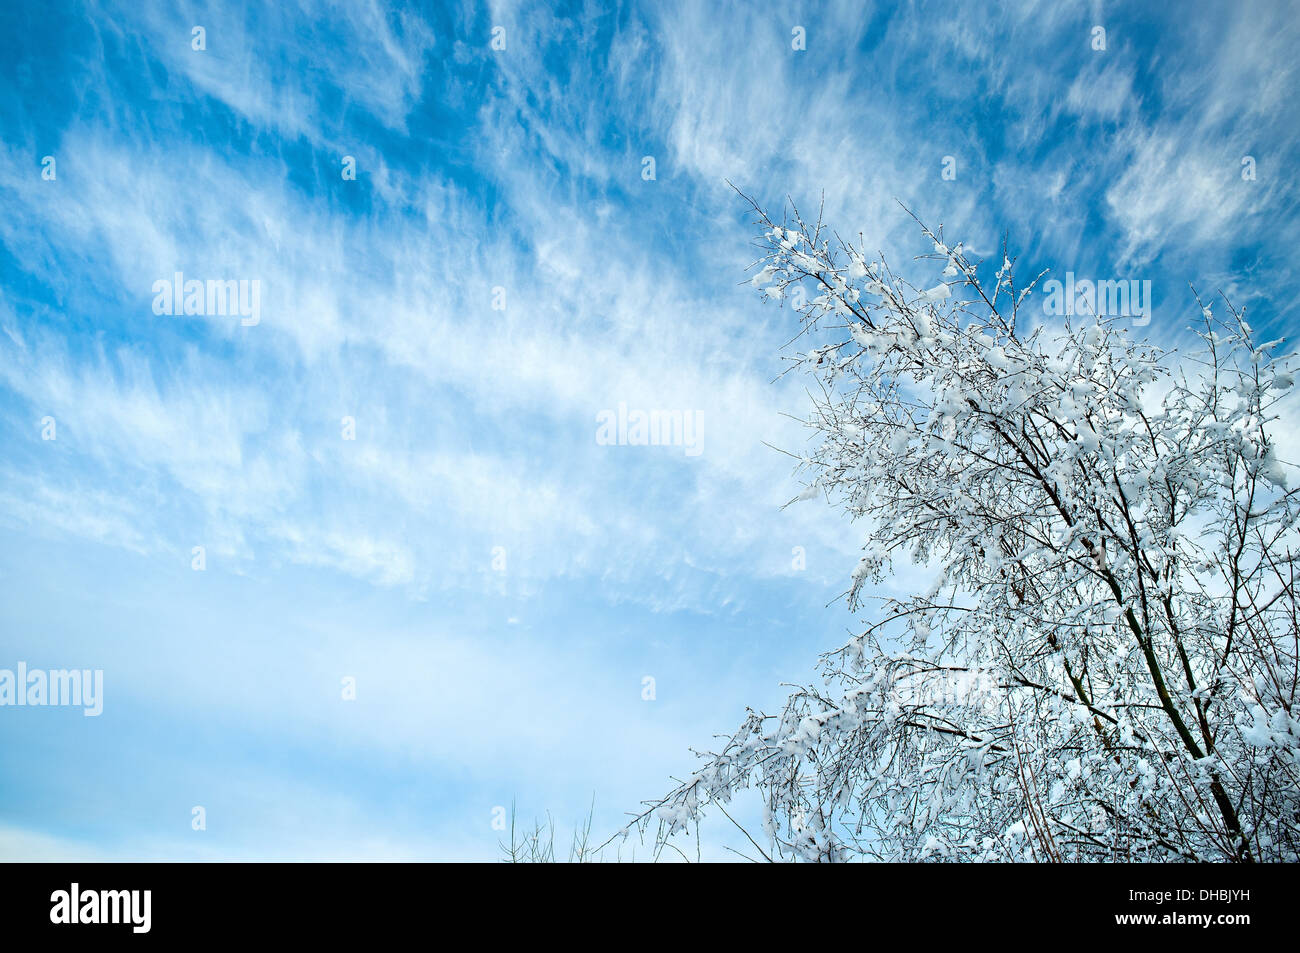 A treetop reaches for the sky - Stock Image